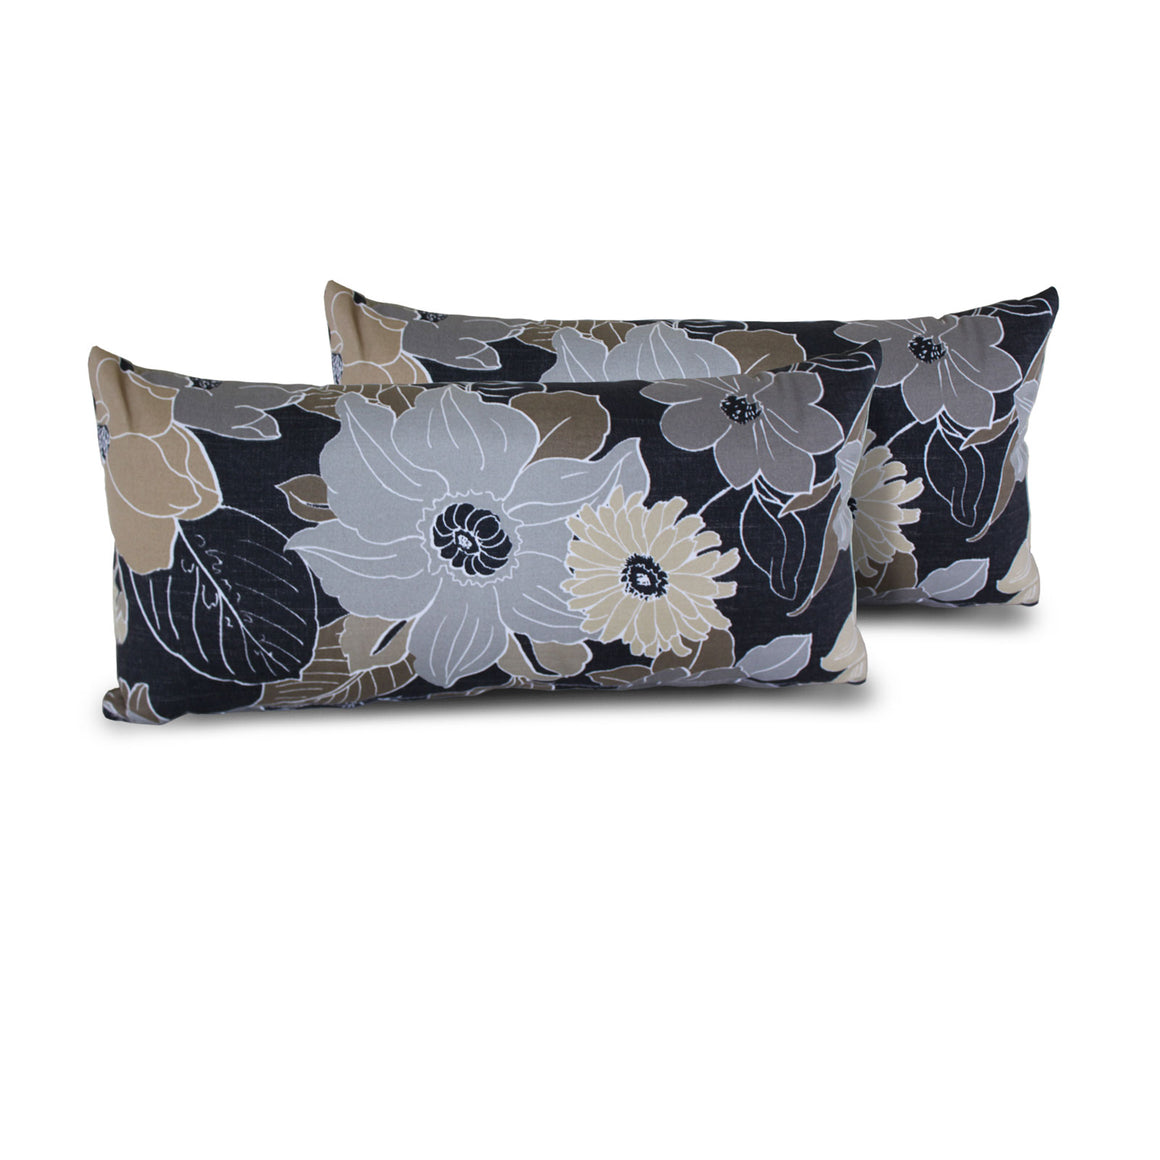 Grey Floral Outdoor Throw Pillows Rectangle Set of 2 , TK Classics- grayburd